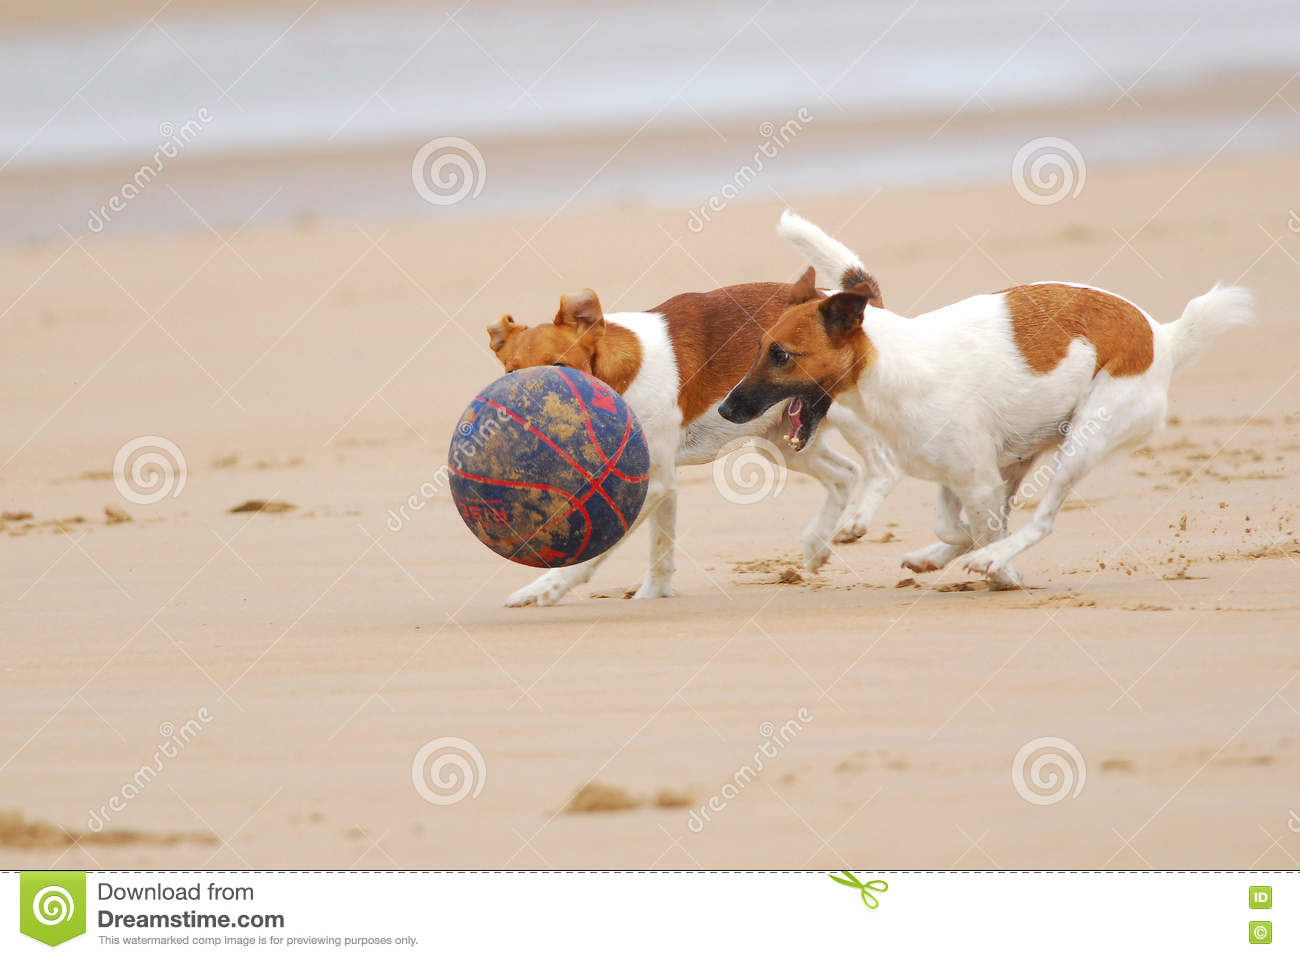 Dogs chasing a ball